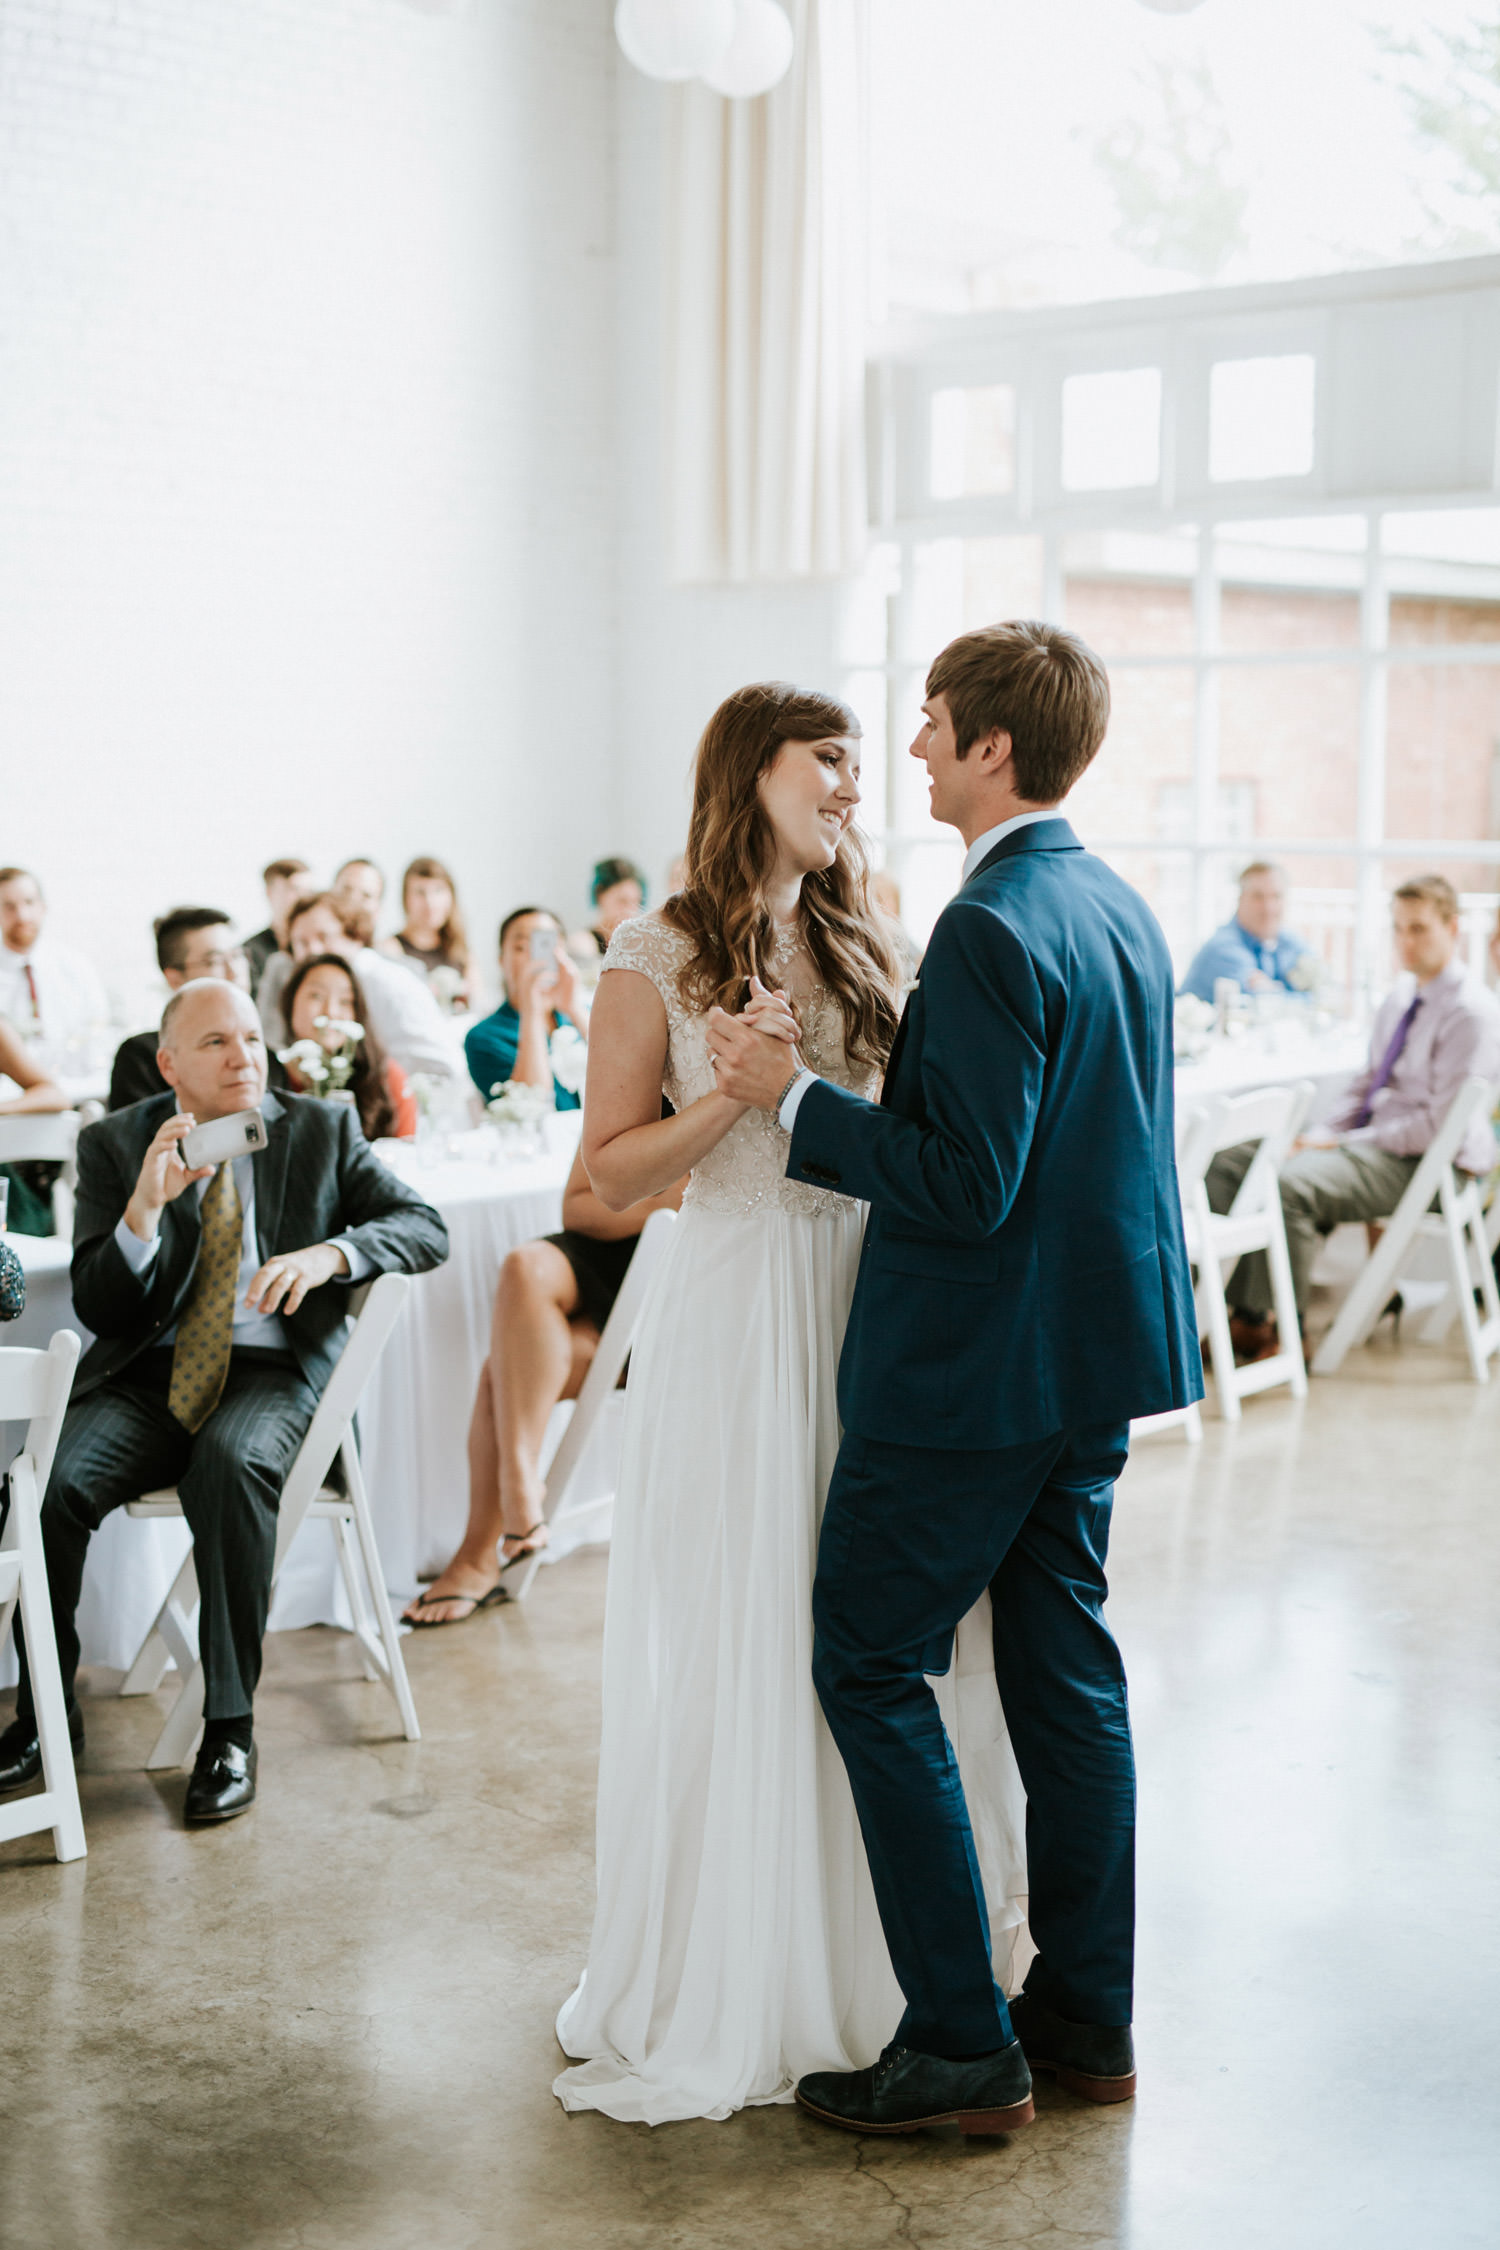 Bride and groom dance for the first time at prairie productions in Chicago